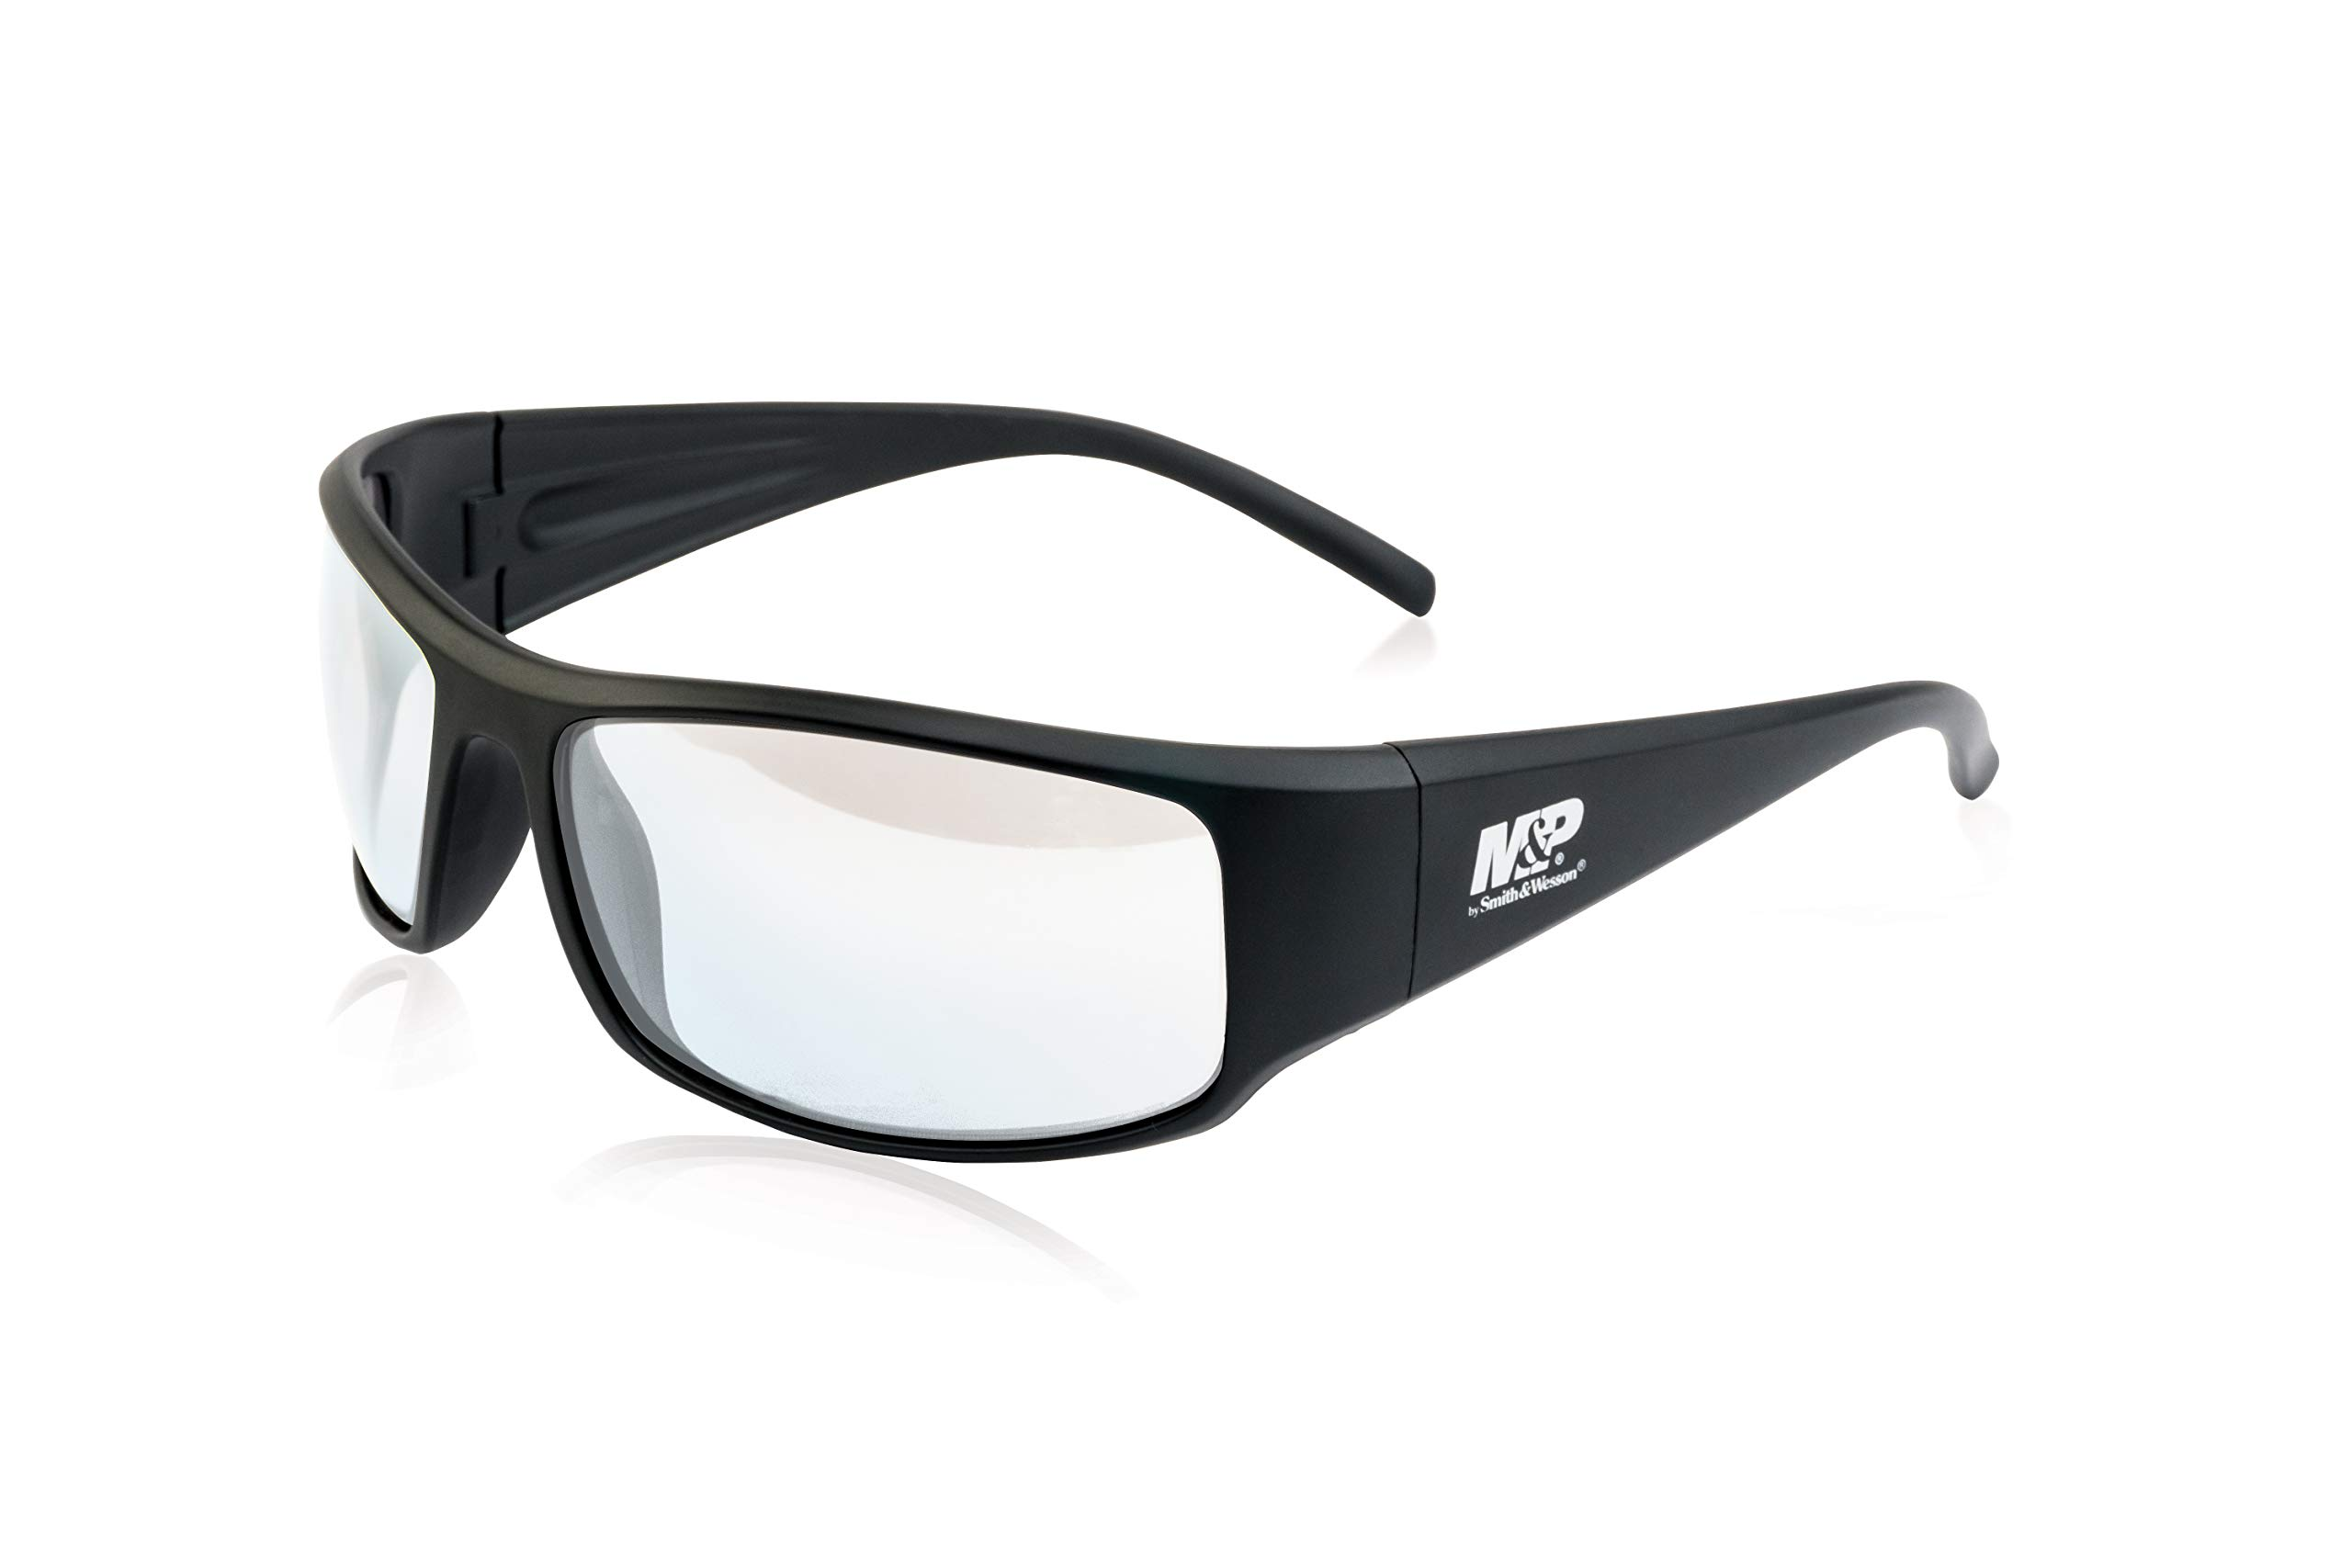 Smith & Wesson M&P Thunderbolt Full Frame Shooting Glasses with Impact Resistance and Anti-Fog Lenses for Shooting, Working and Everyday Use by SMITH & WESSON